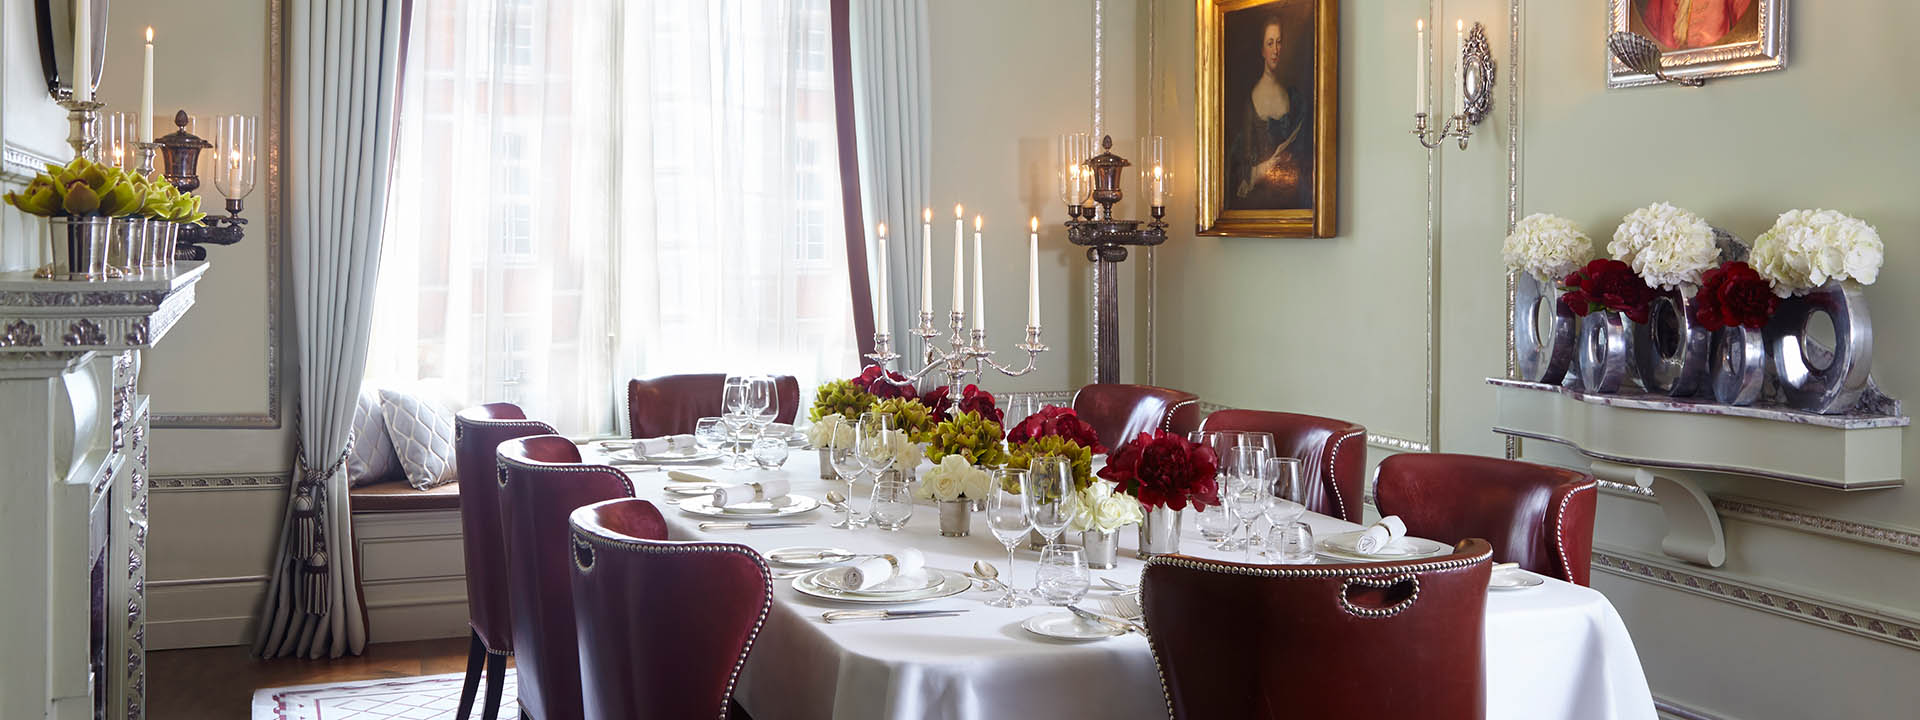 Georgian room at The Connaught set up for a dinner party